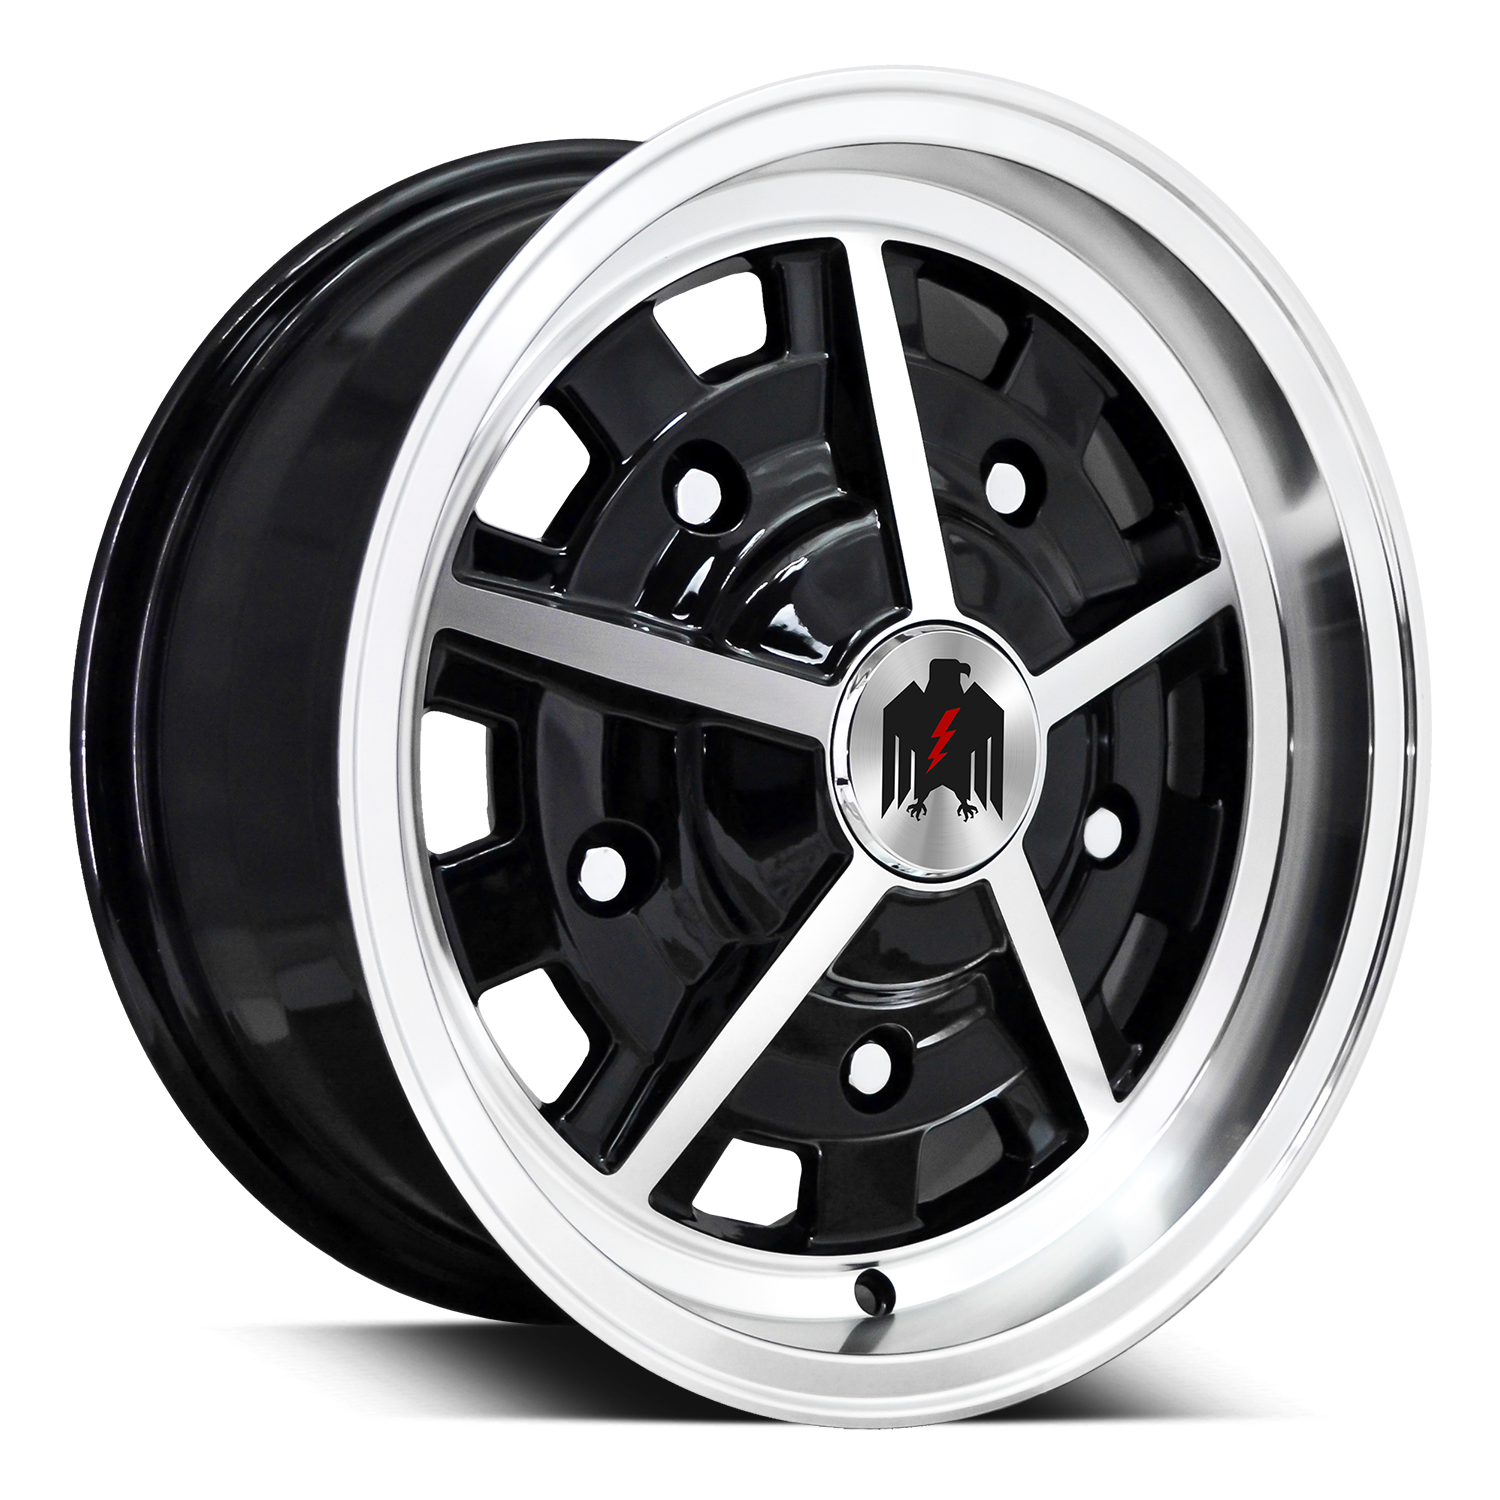 Shop Klassik Rader 914 Wheels in 17 Inch